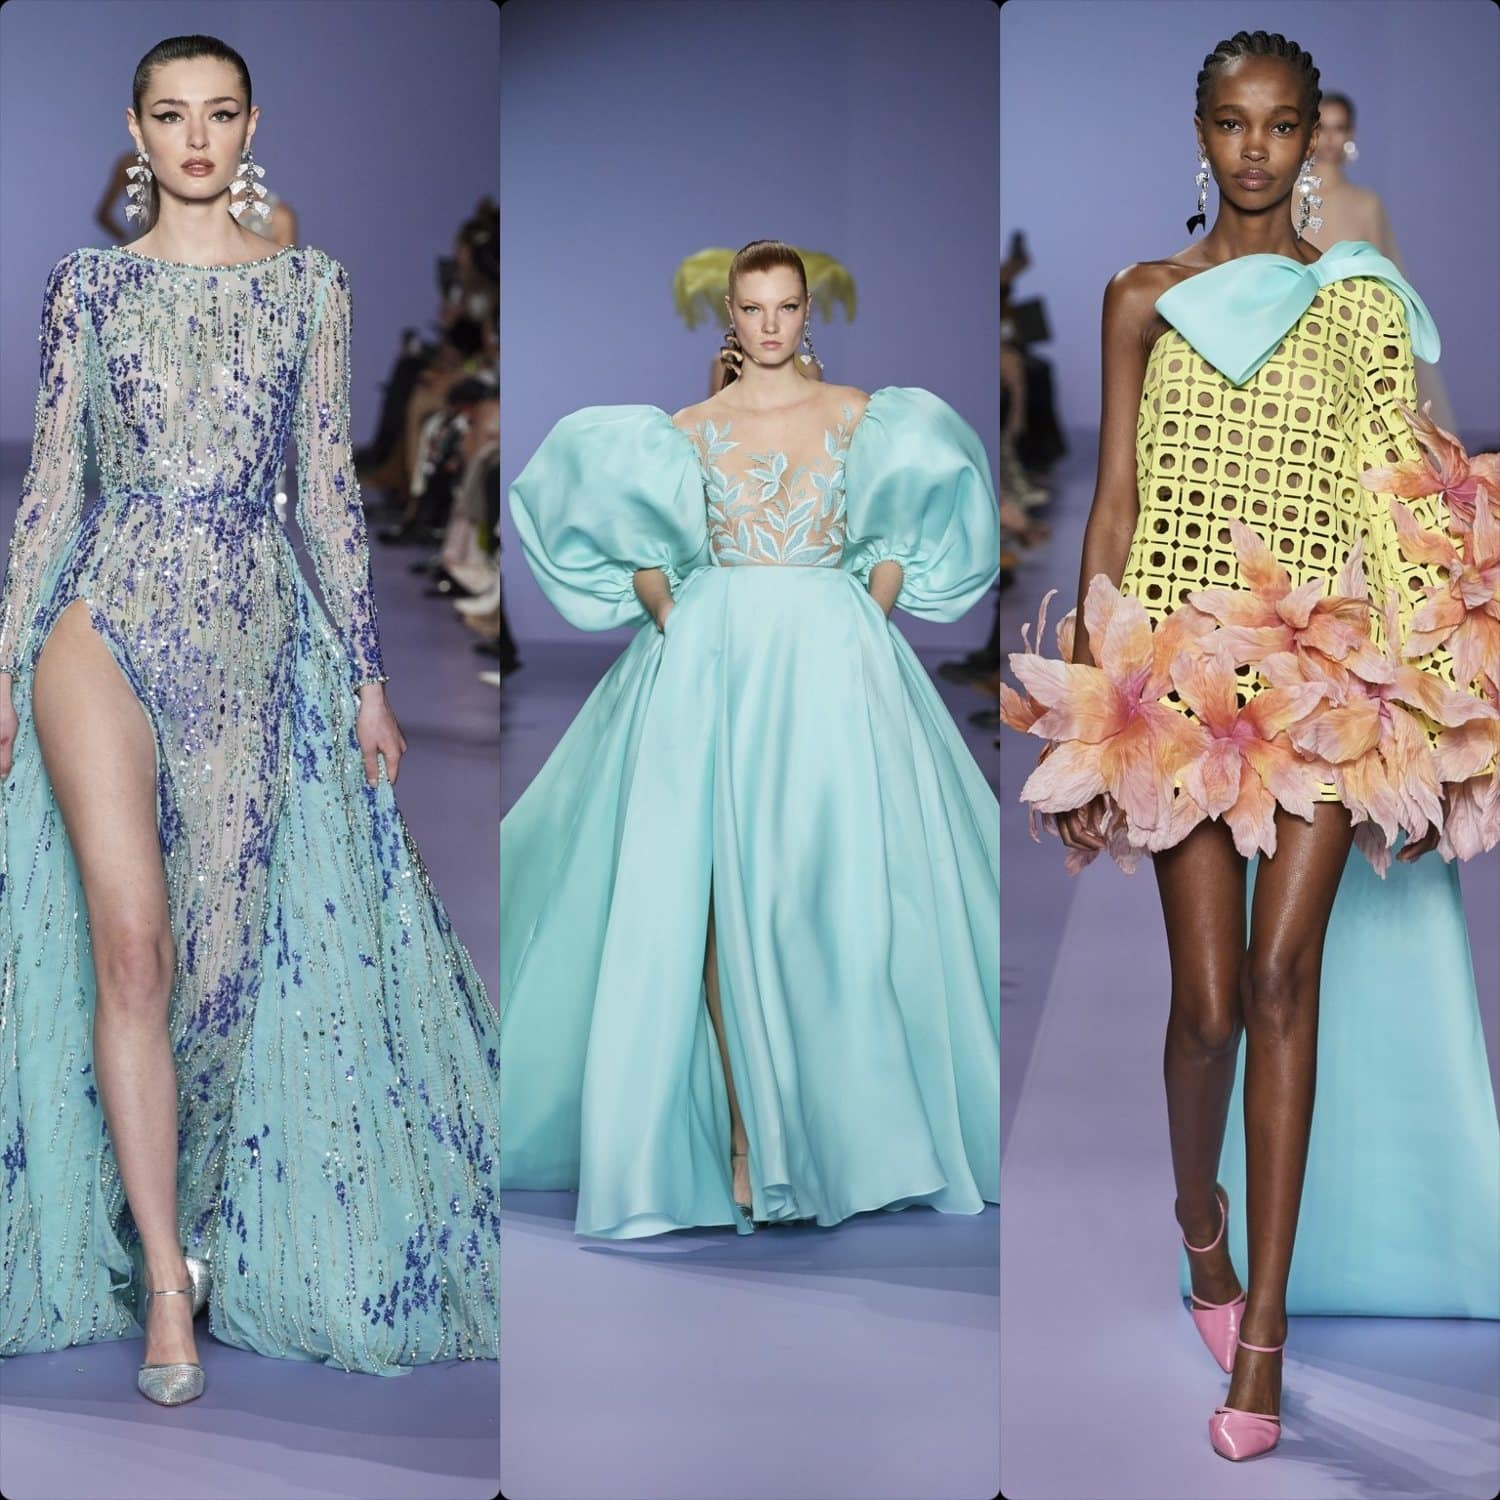 Georges Hobeika Haute Couture Spring Summer 2020 Paris. RUNWAY MAGAZINE ® Collections. RUNWAY NOW / RUNWAY NEW